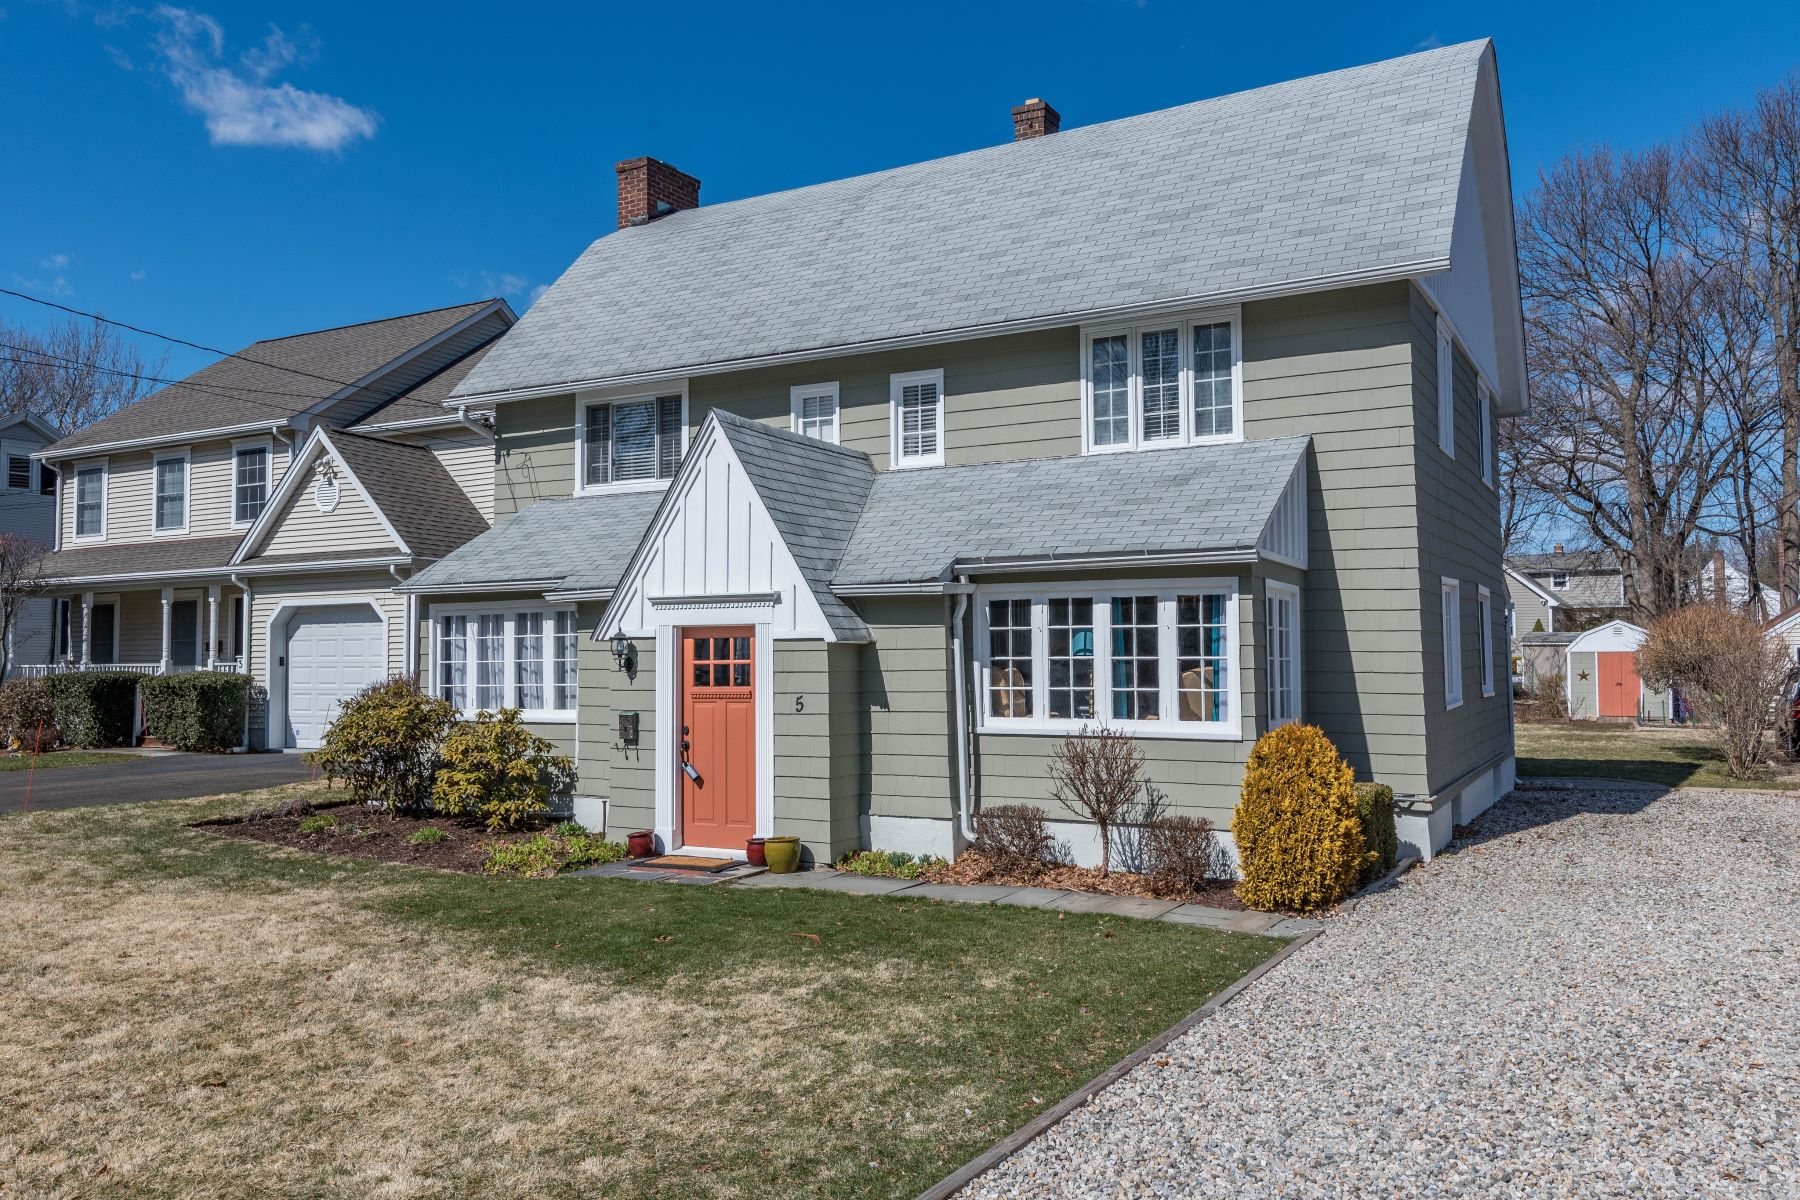 Single Family Home for Sale at Beautiful, Updated And Move-In Condition 5 Hazel Street, Norwalk, Connecticut, 06851 United States